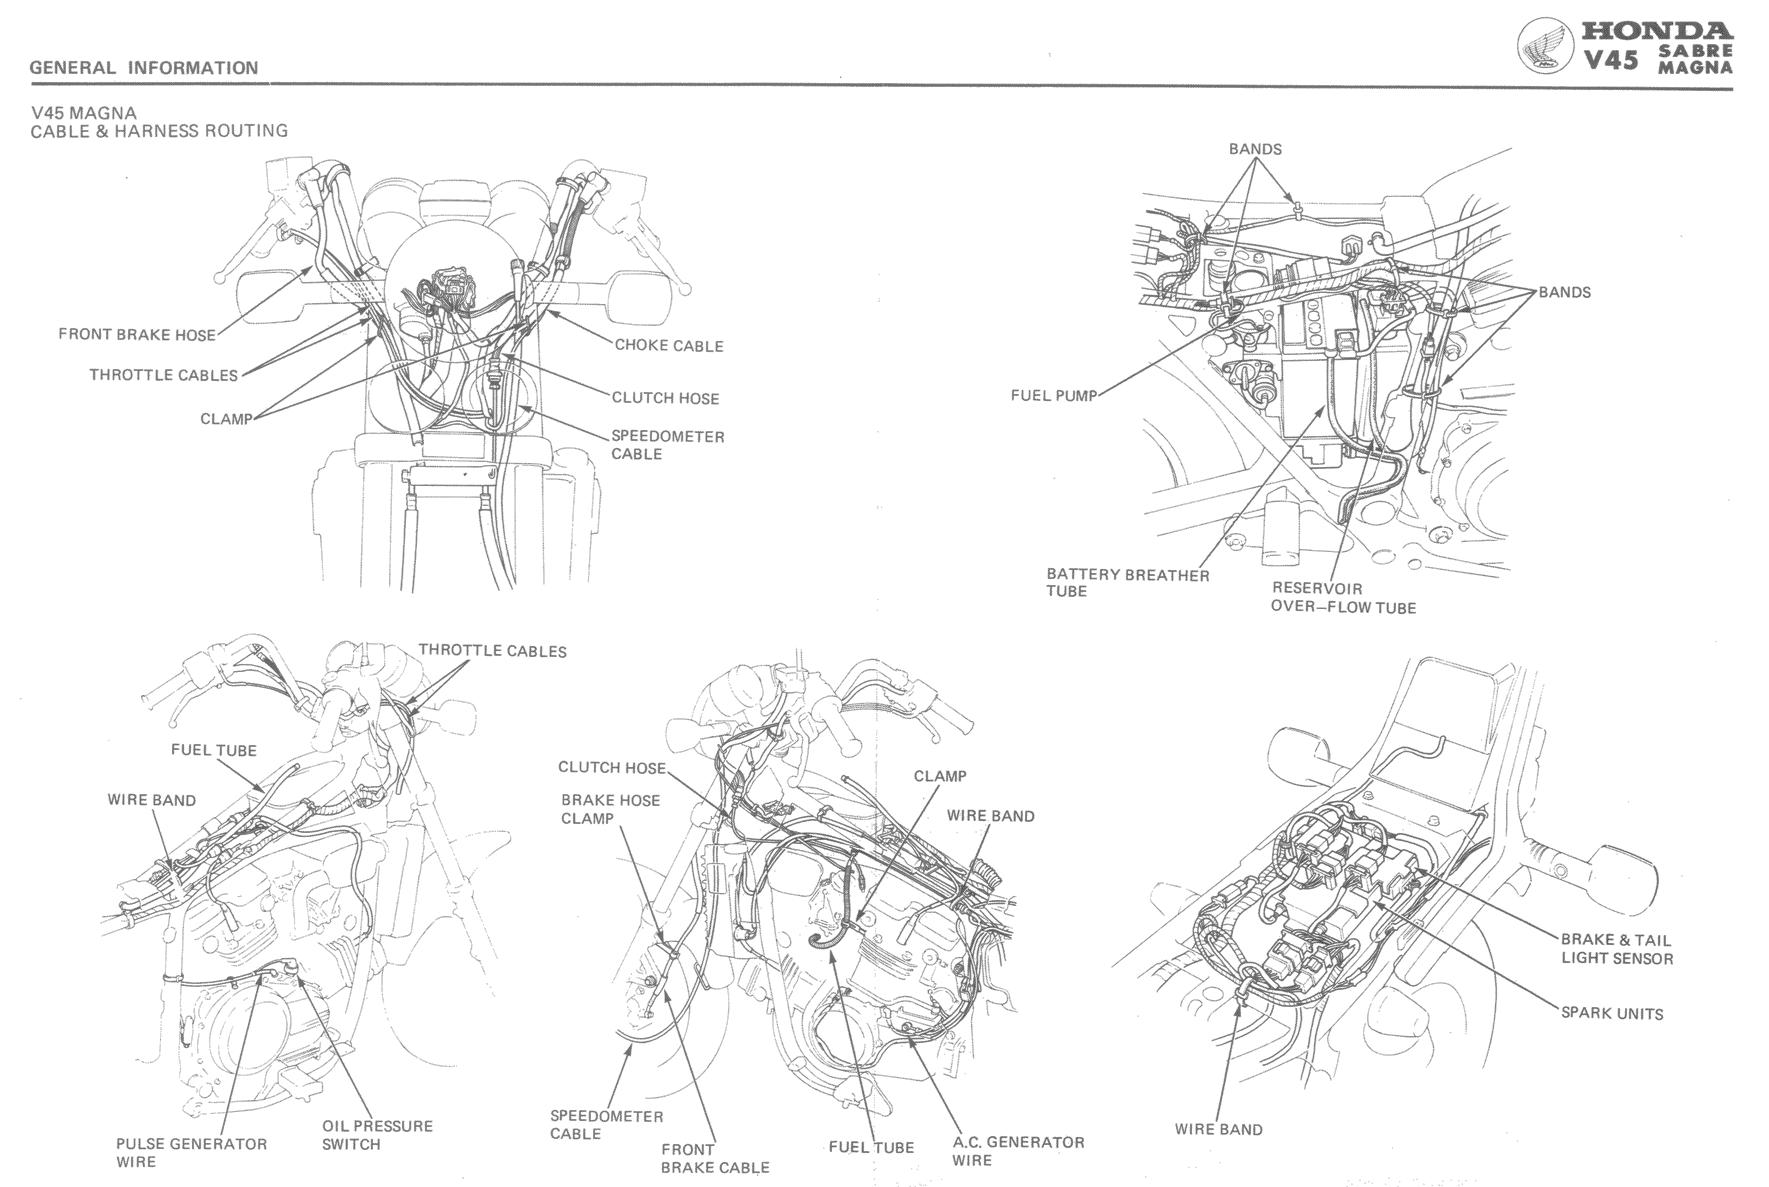 Honda Vfr 750 Engine Diagram. Honda. Auto Wiring Diagram